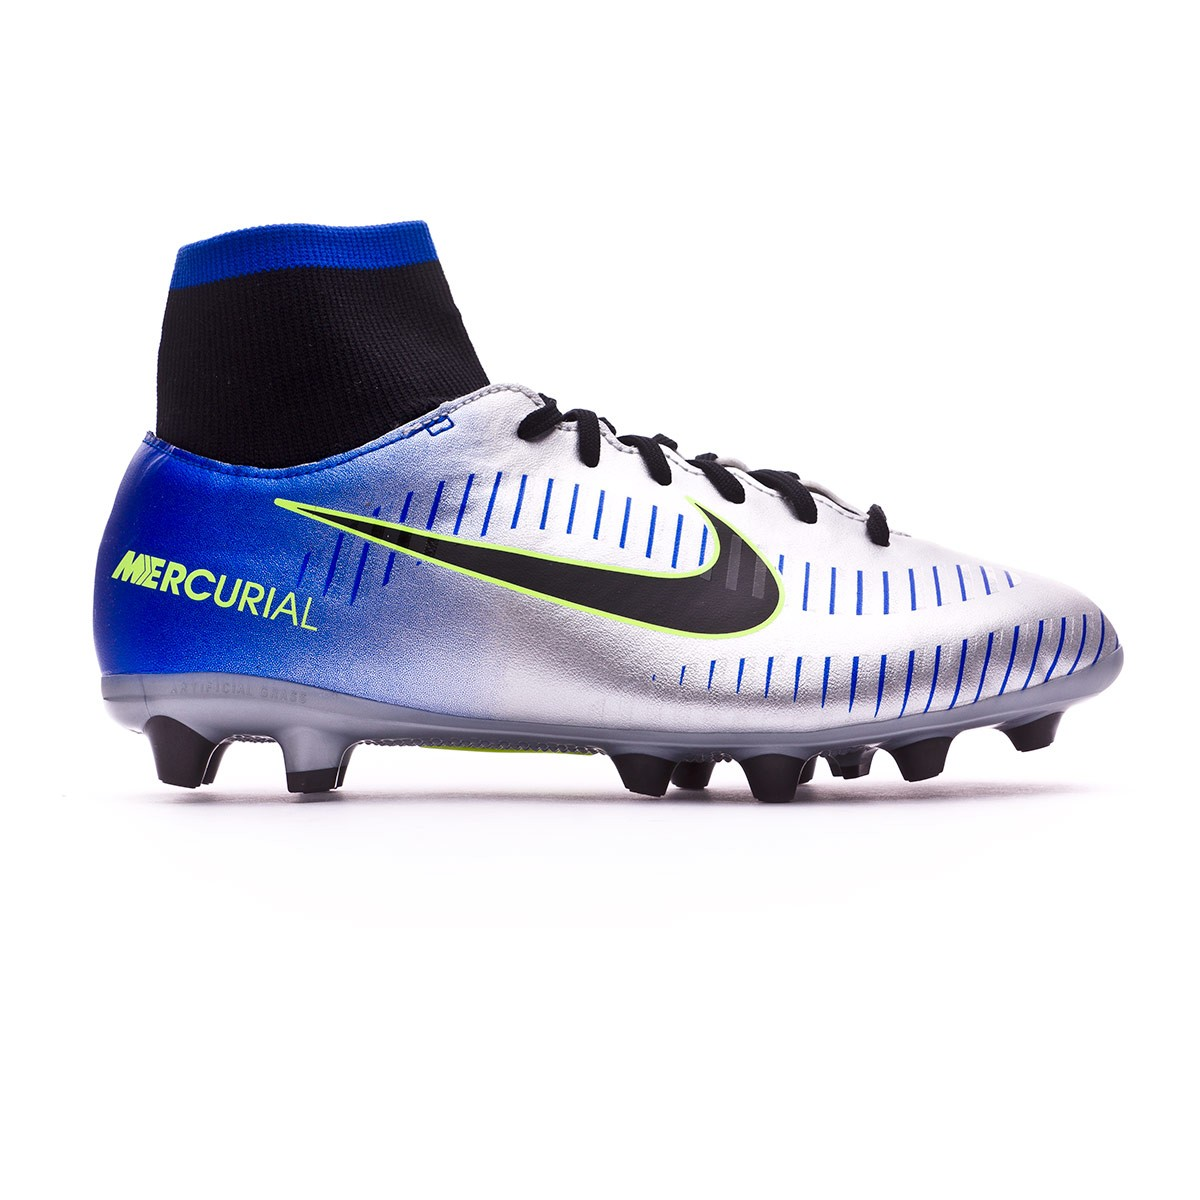 official photos 65d03 7ef50 Bota Mercurial Victory VI DF AG-Pro Neymar Niño Racer blue-Black-Chrome-Volt